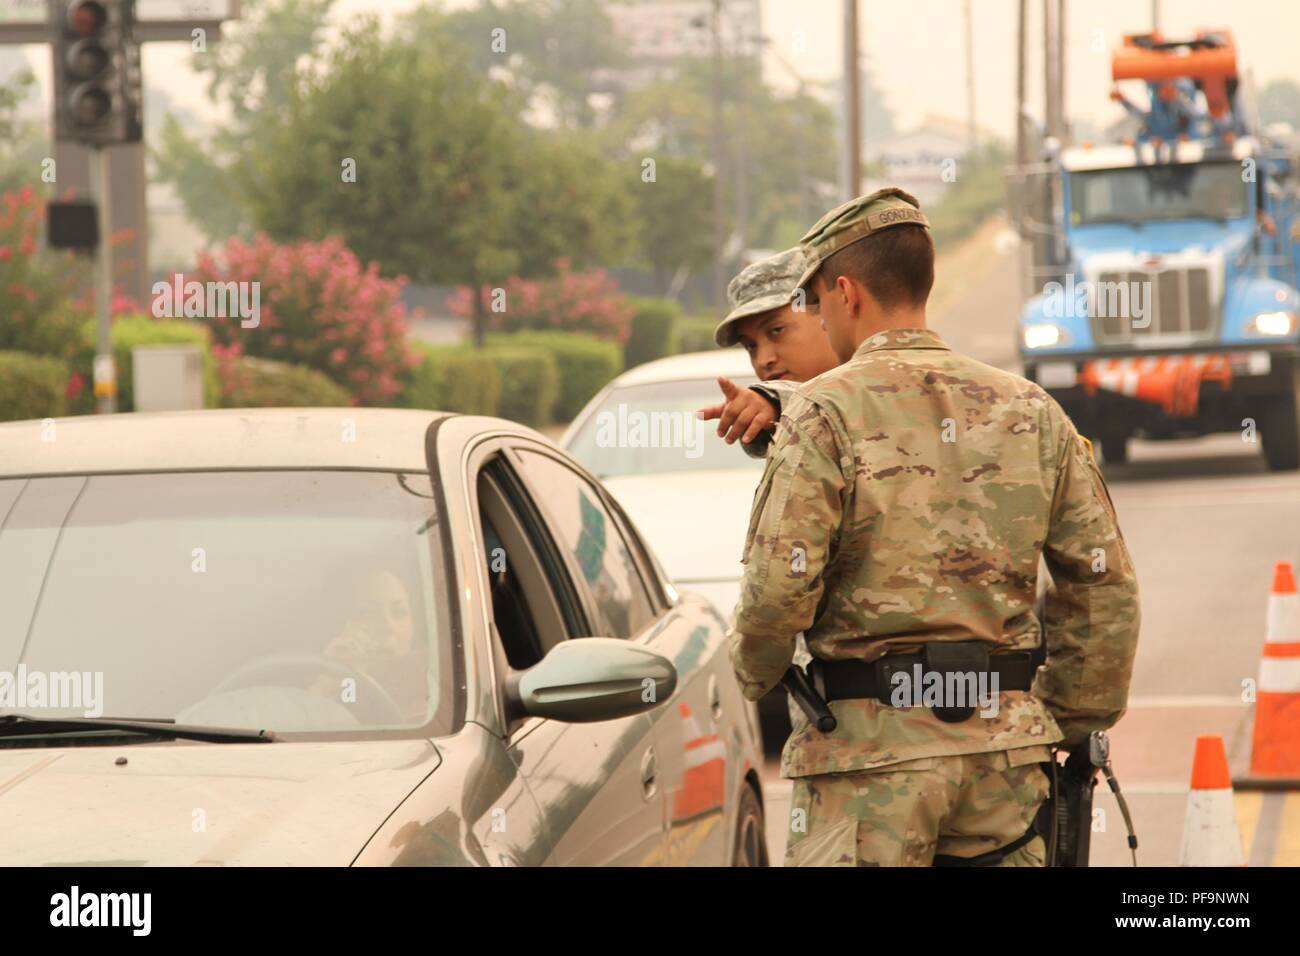 US Army Spcs Rodavlas Manliclic and Mailo Gonzalez of the 870th Military Police Company, 185th Military Police Battalion, 49th Military Police Brigade, California Army National Guard, control a traffic point at an active intersection July 29 in Redding, California, where the Carr Fire passed through and continued to expand, July 29, 2018. Image courtesy Staff Sgt. Edward Siguenza/California National Guard. () - Stock Image